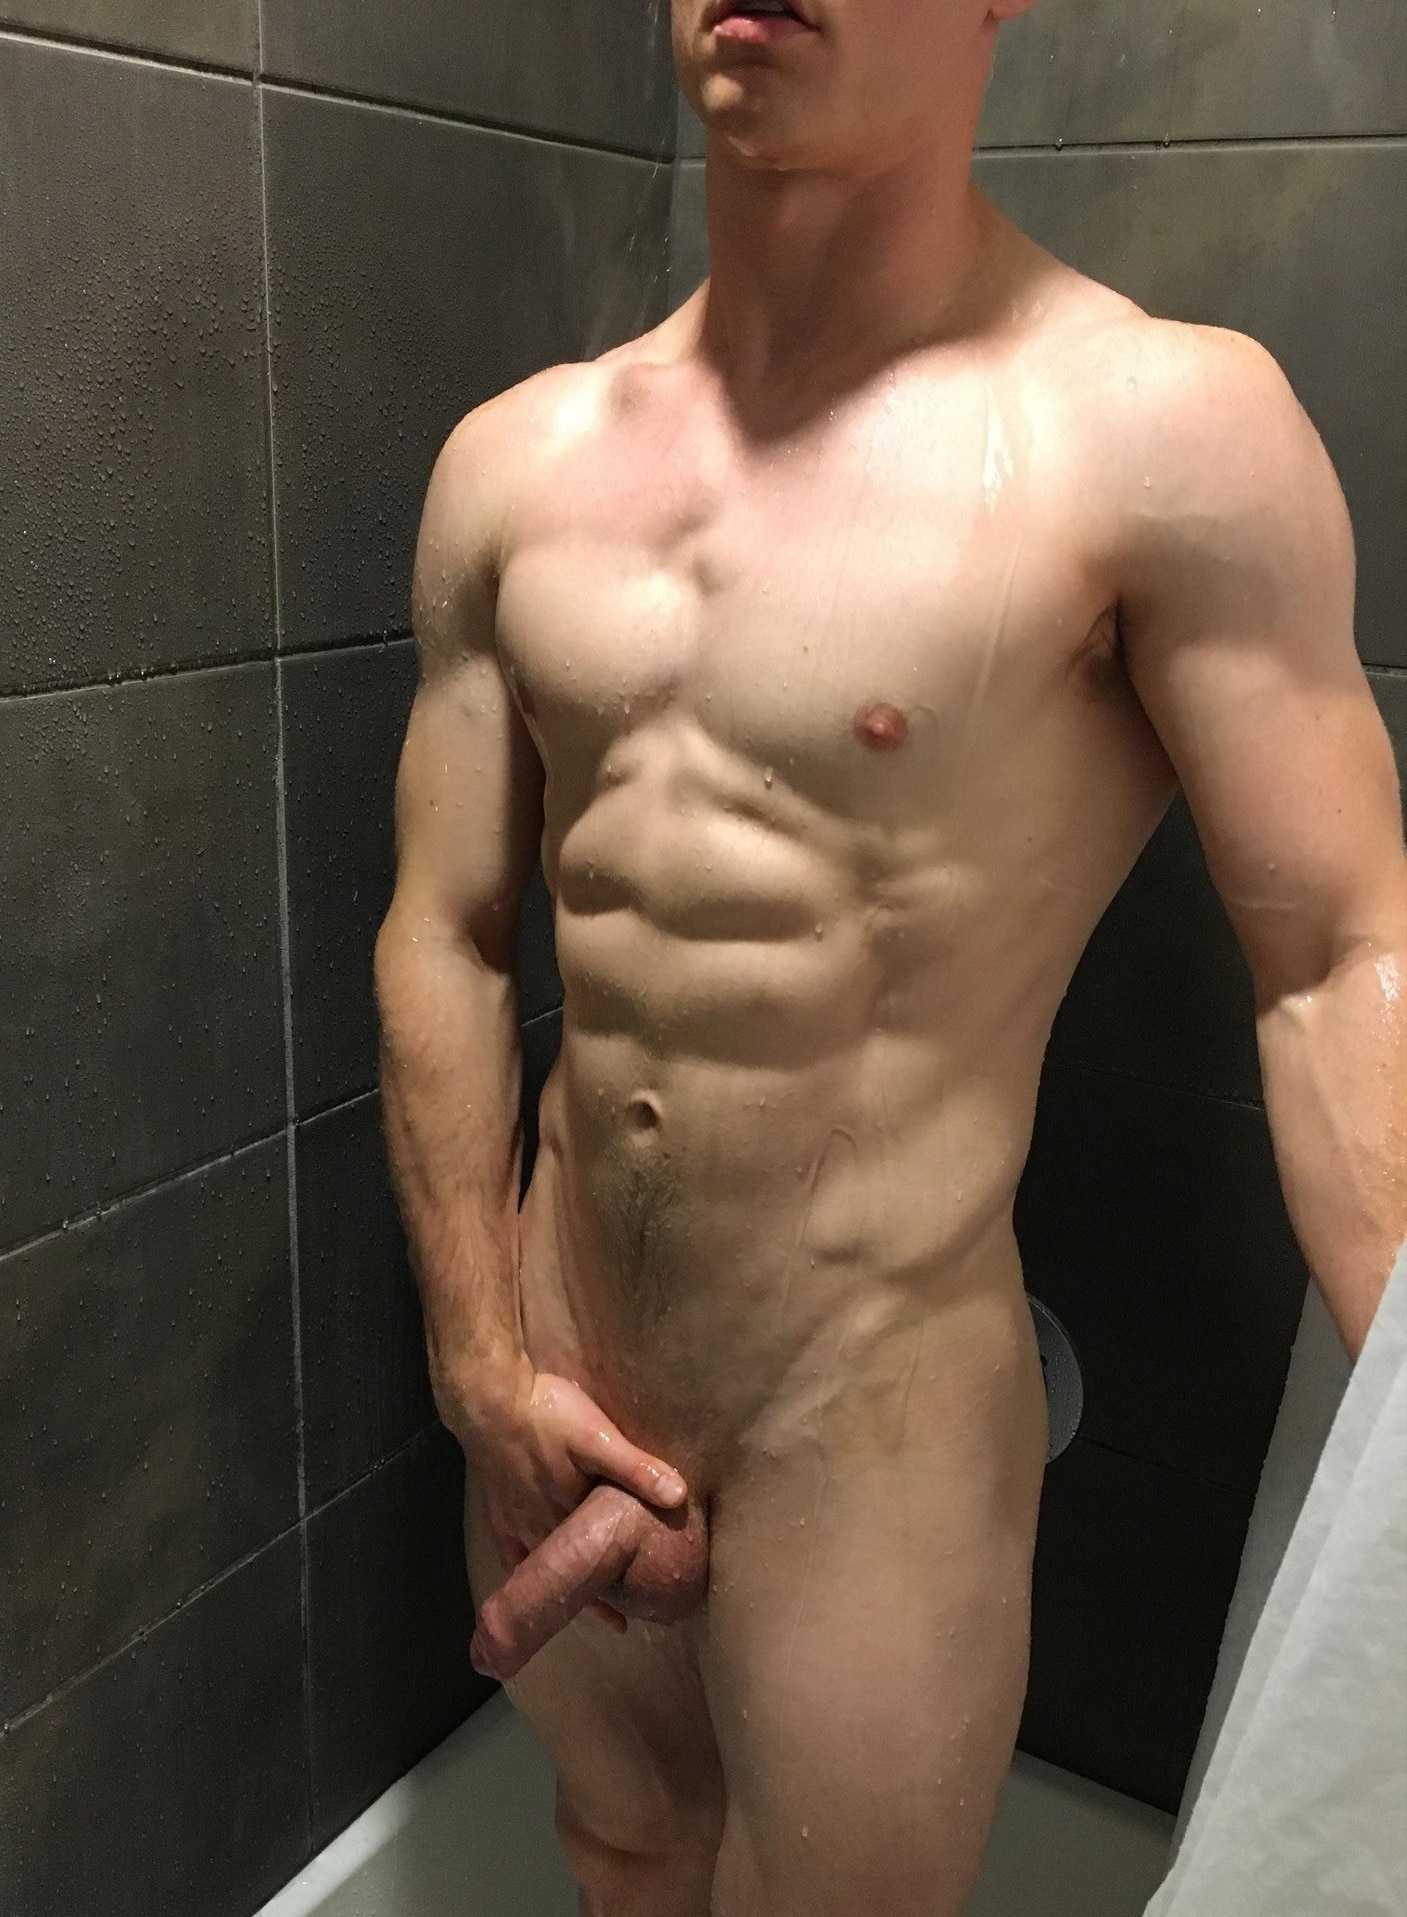 Perfect body and cock